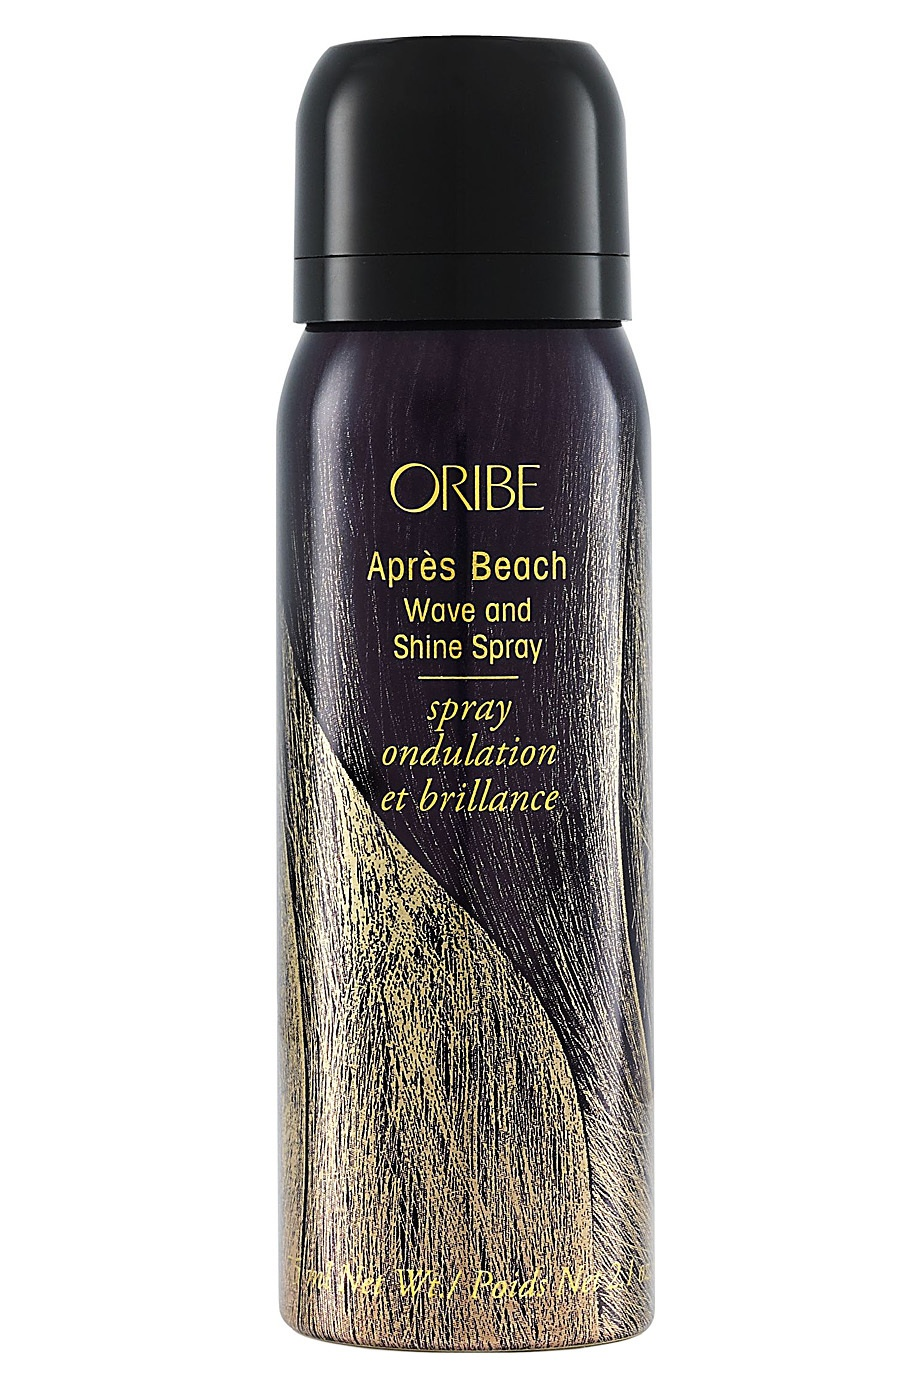 Спрей для создания естественных локонов Apres Beach Wave & Shine 75ml Oribe (фото)